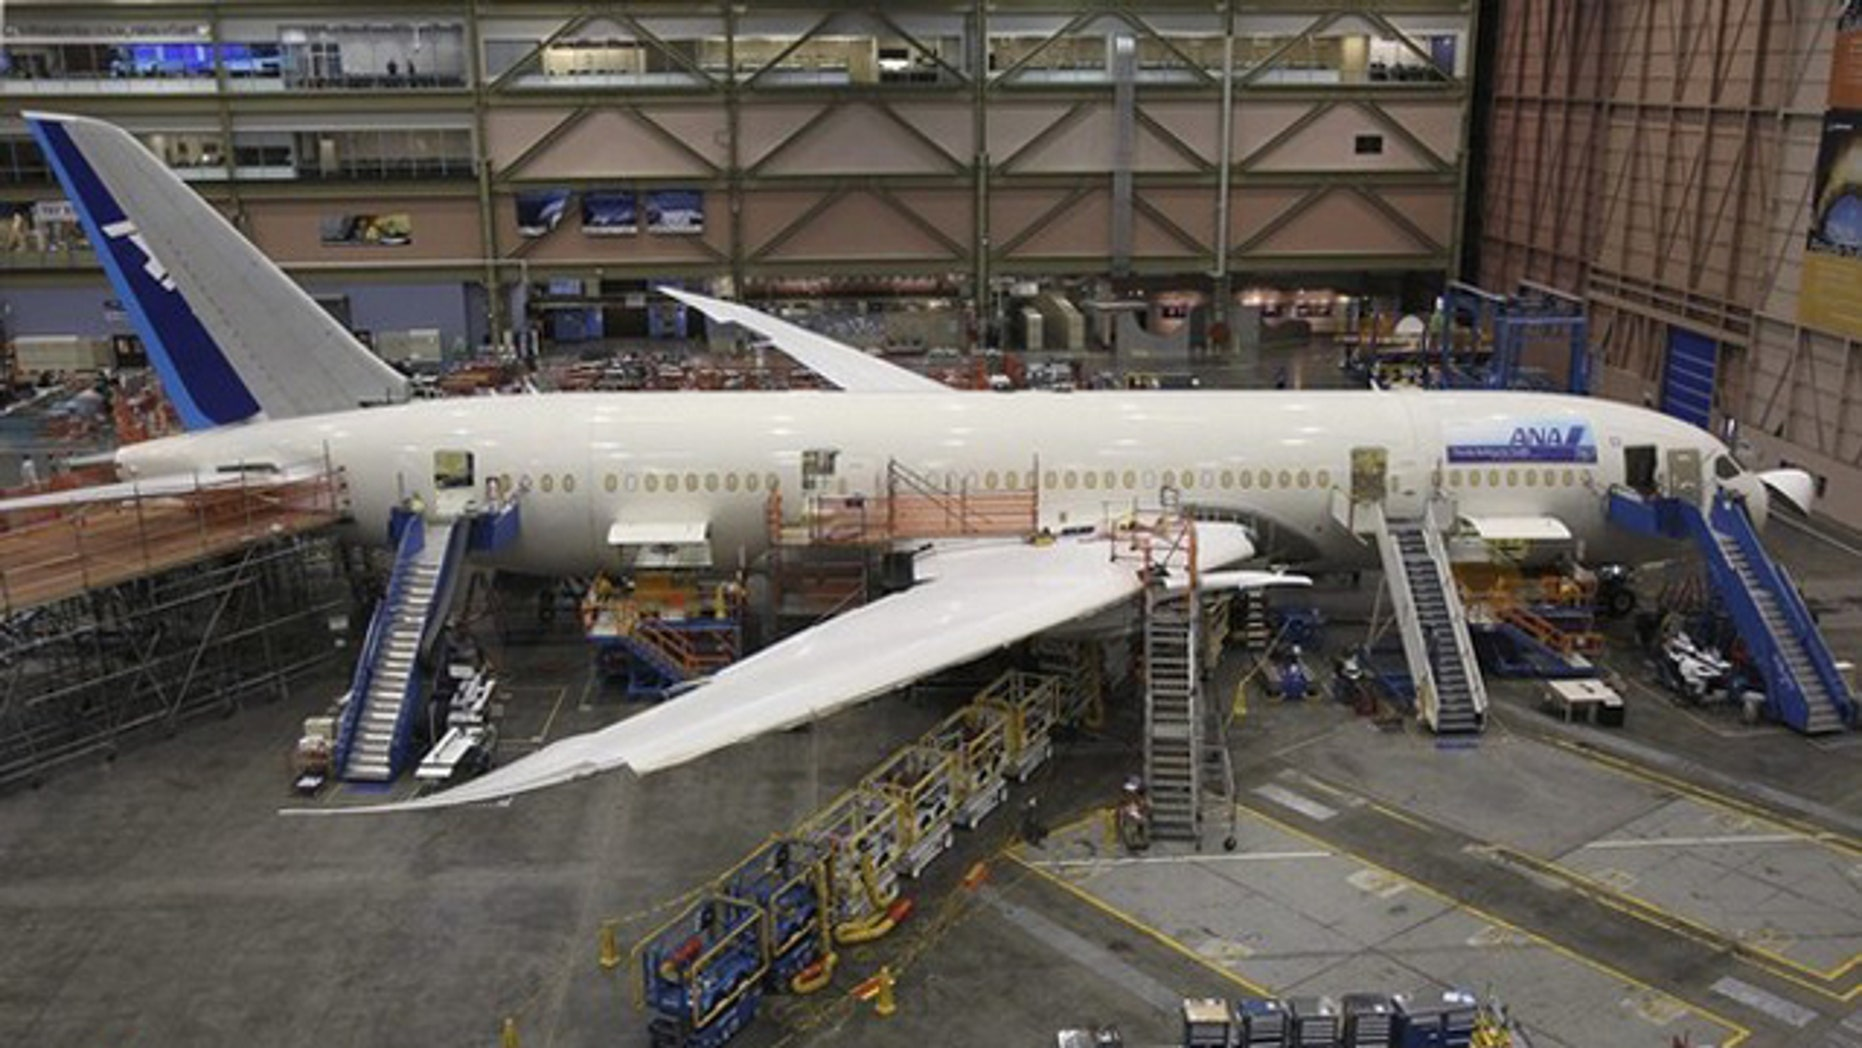 A Boeing 787 Dreamliner is seen on the production line at Boeing's Commercial Airplane manufacturing facility in Everett, Wash.